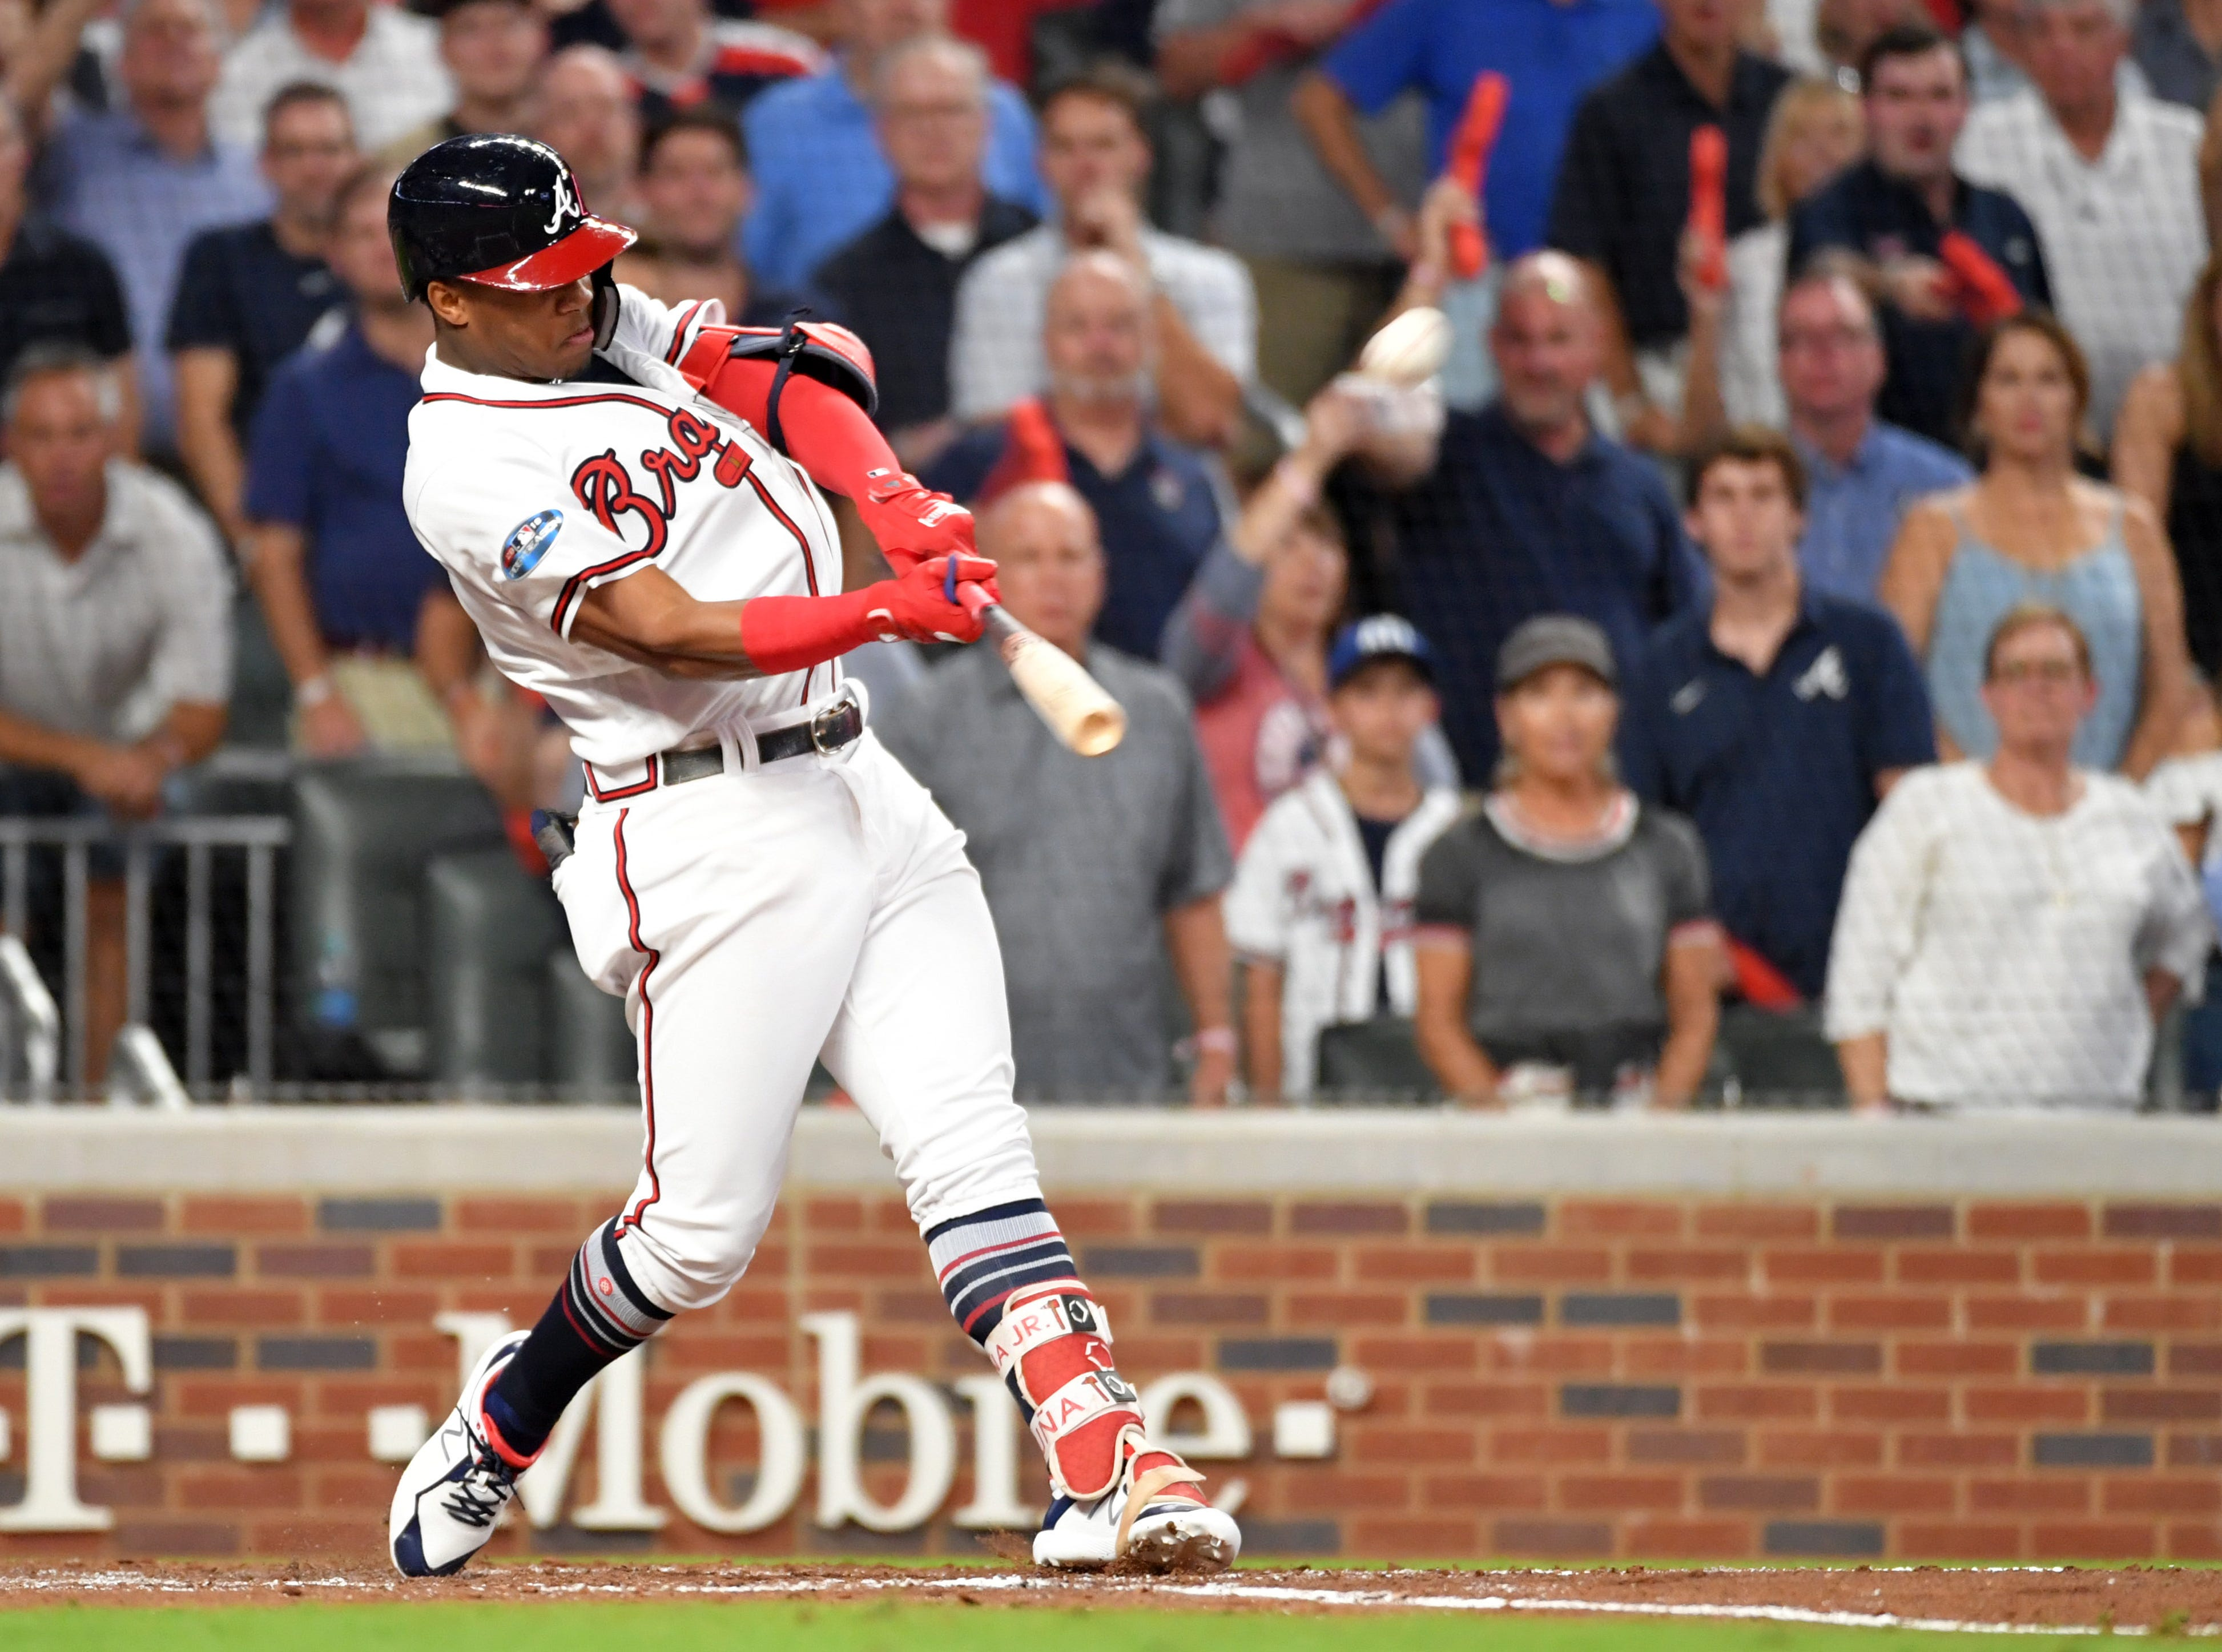 NLDS Game 3: Braves left fielder Ronald Acuna hits a grand slam in the second inning against the Dodgers.